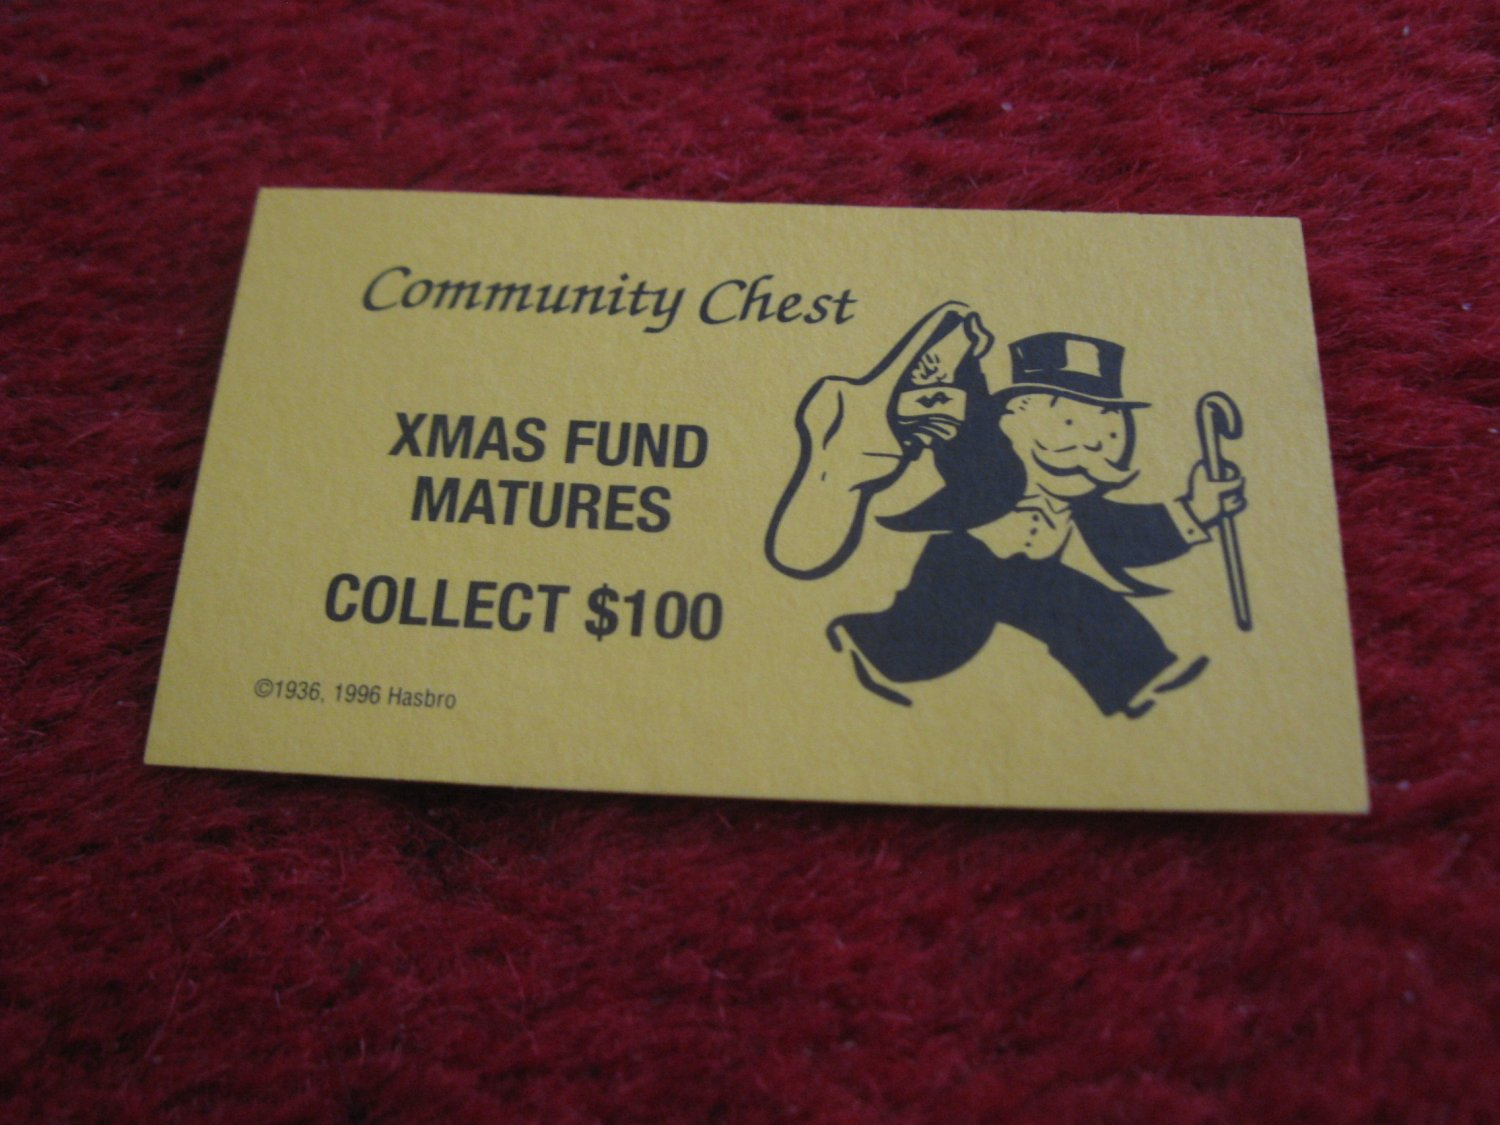 2004 Monopoly Board Game Piece: Xmas Fund Matures Community Chest Card